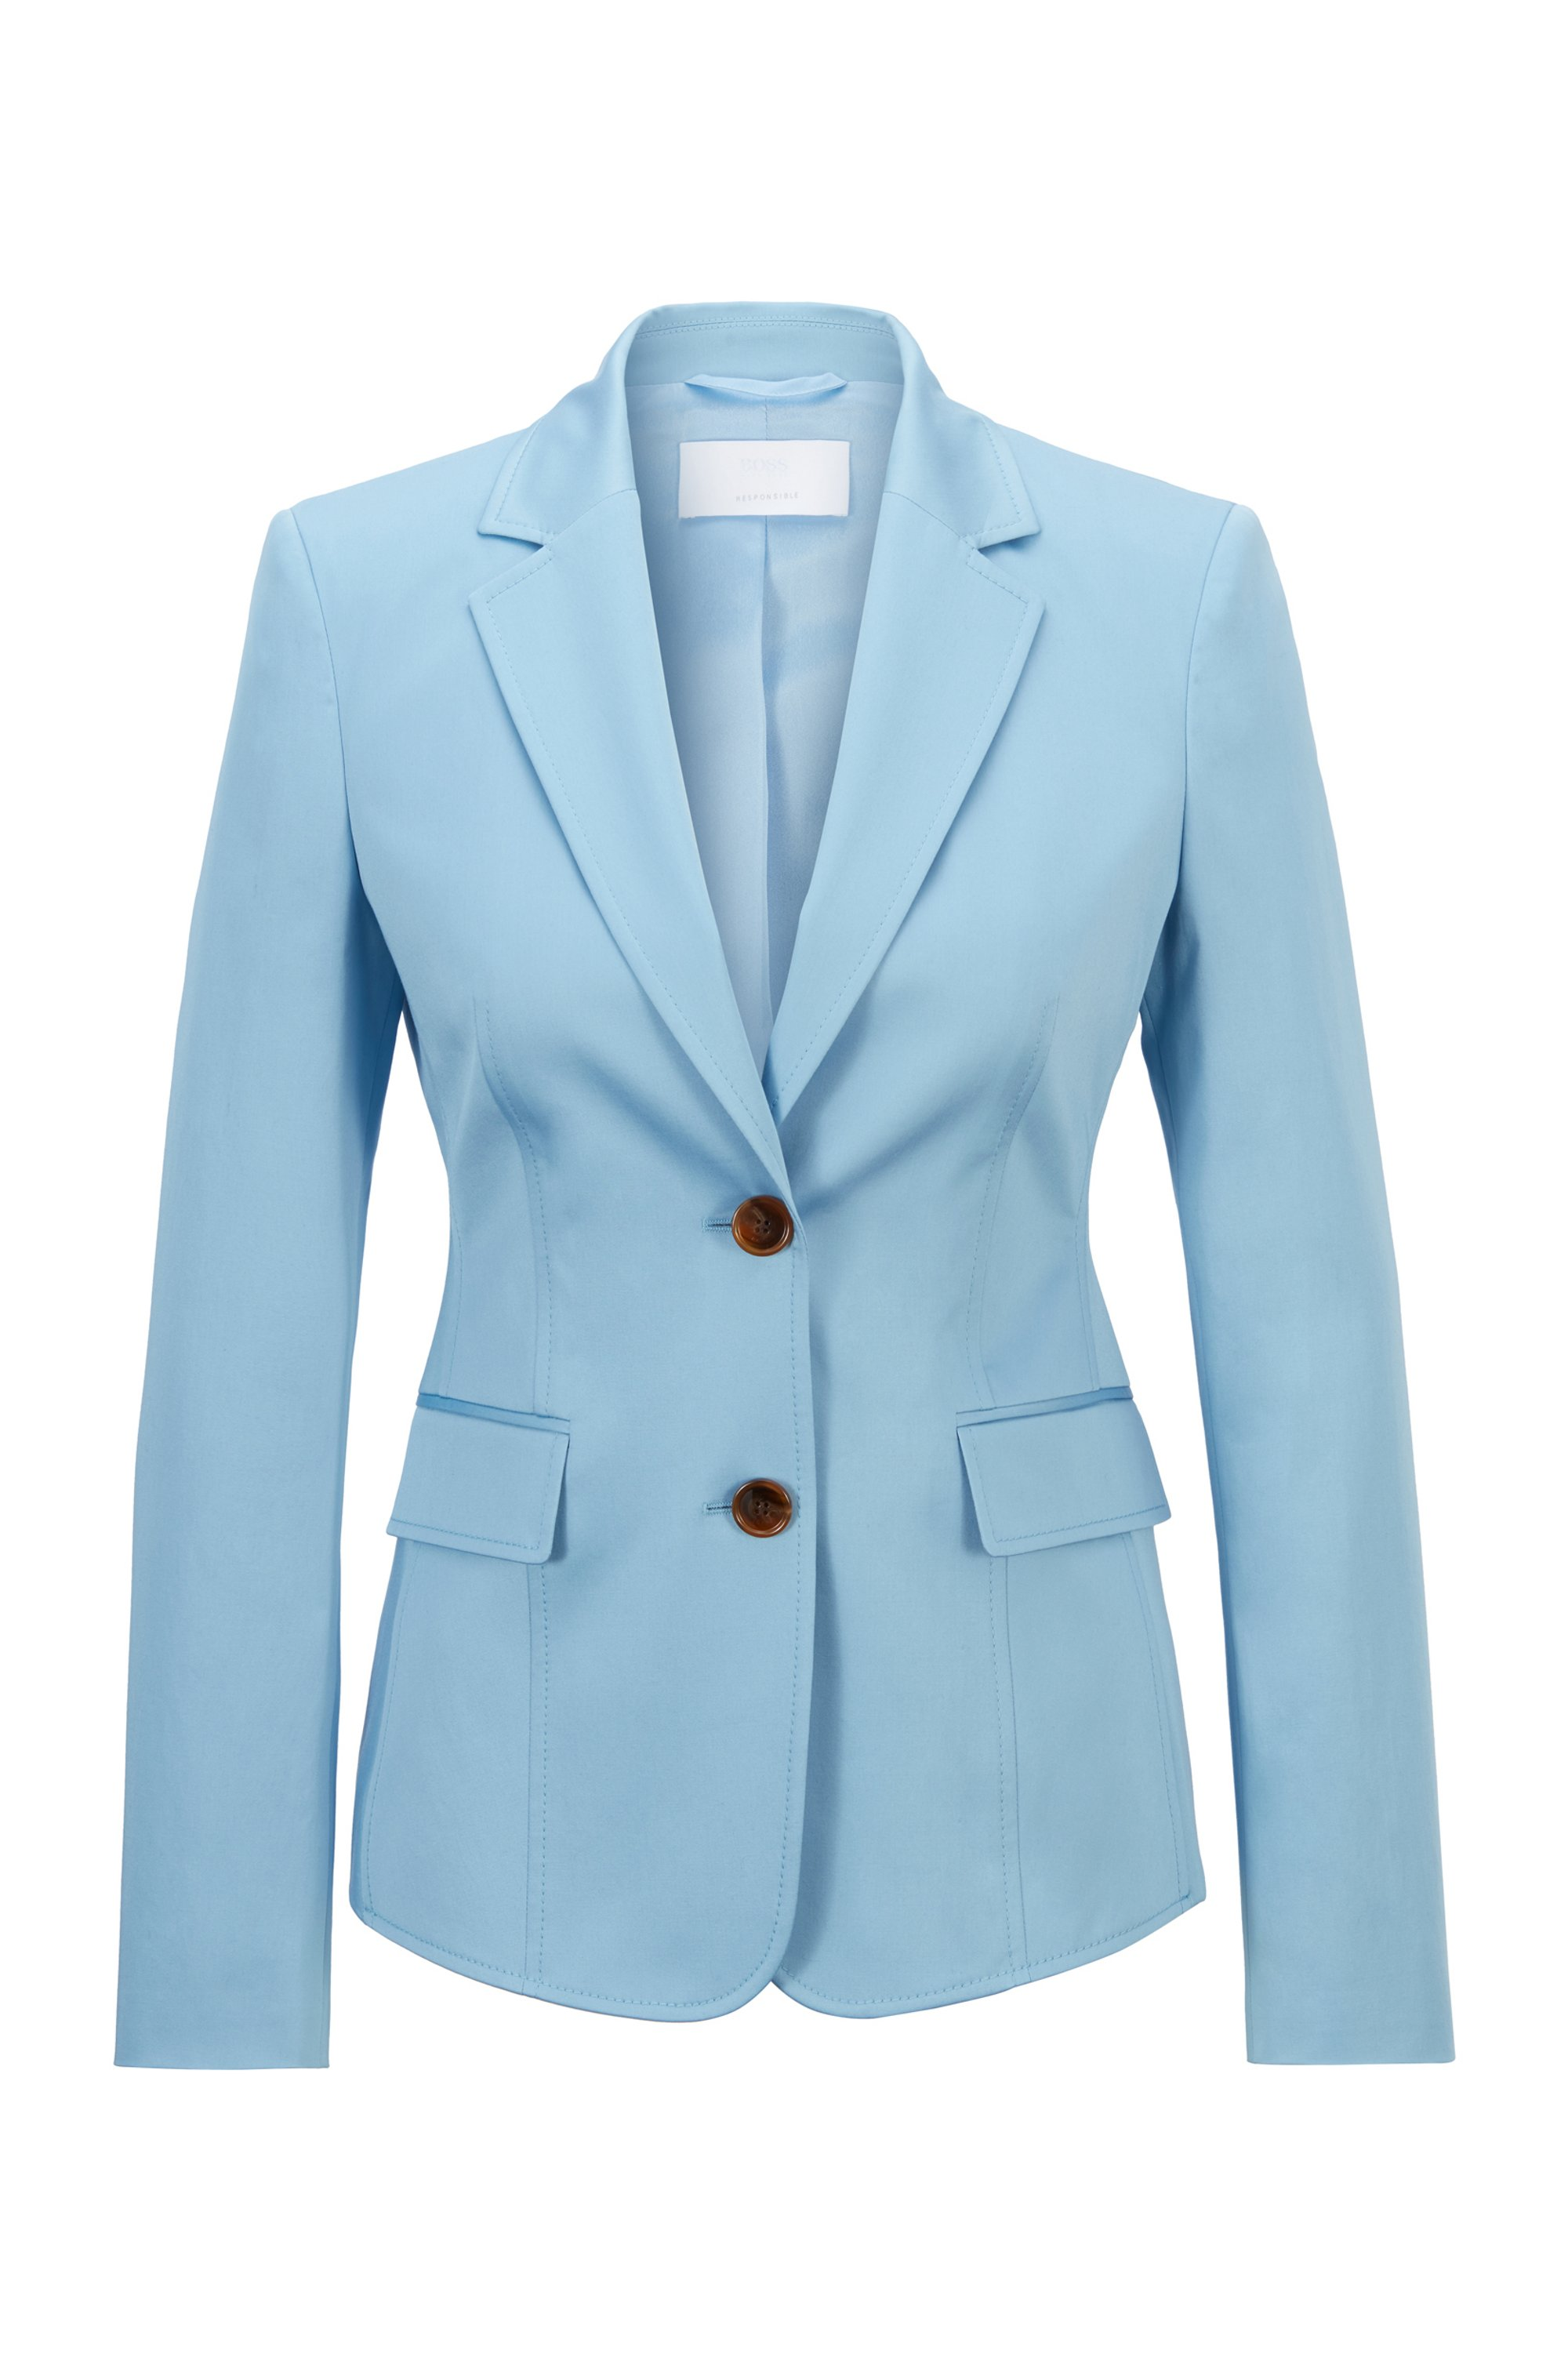 Regular-fit jacket in organic-cotton stretch satin, Light Blue